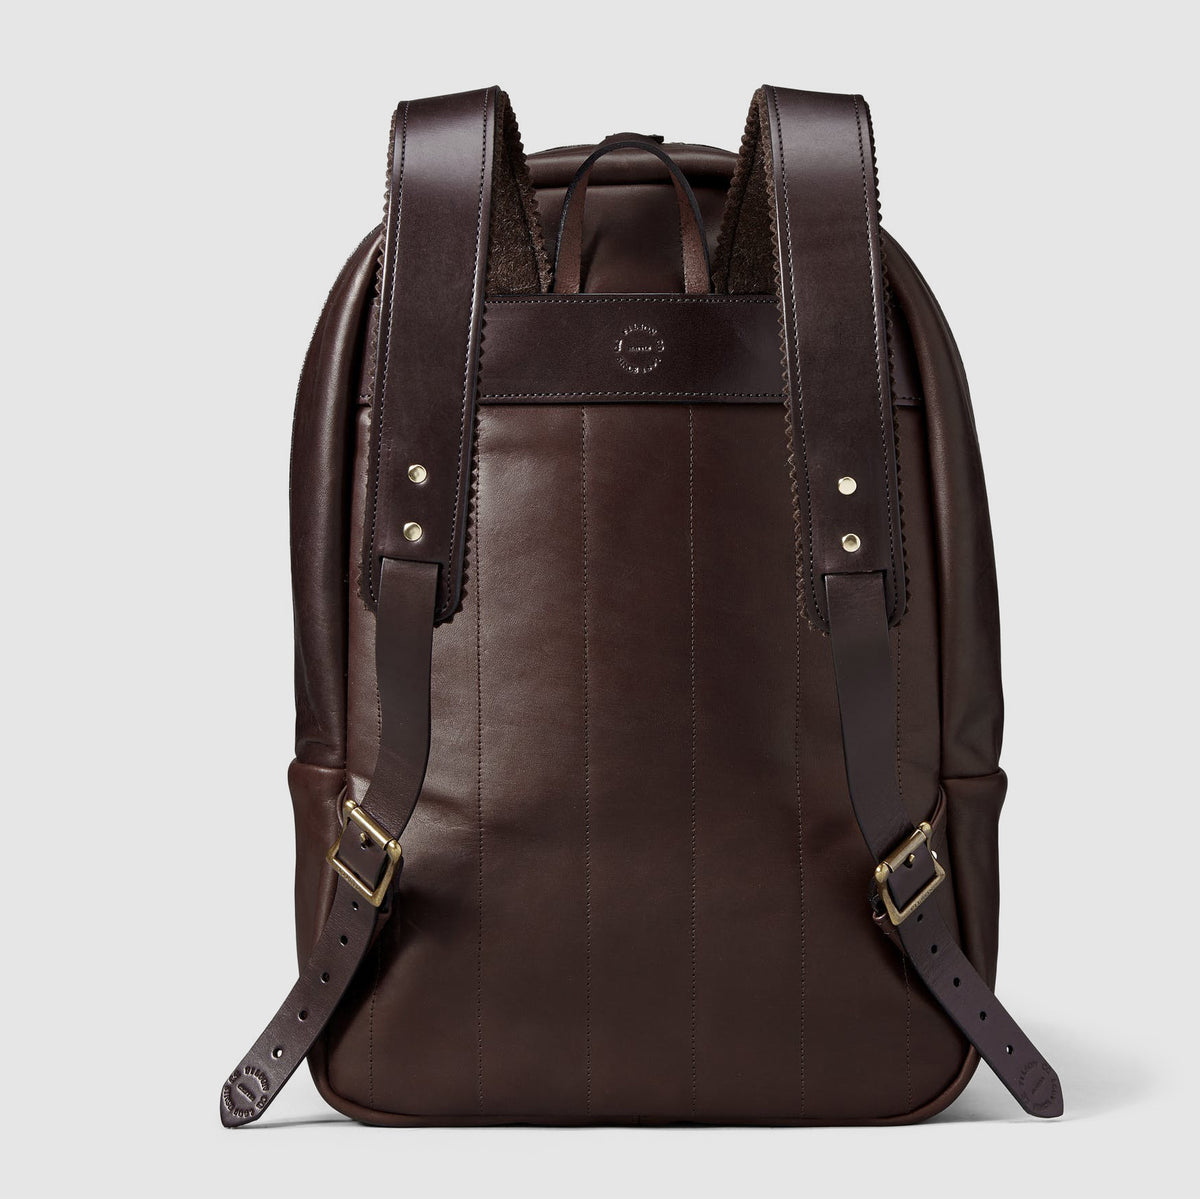 Filson Journeyman Backpack Leather Limited